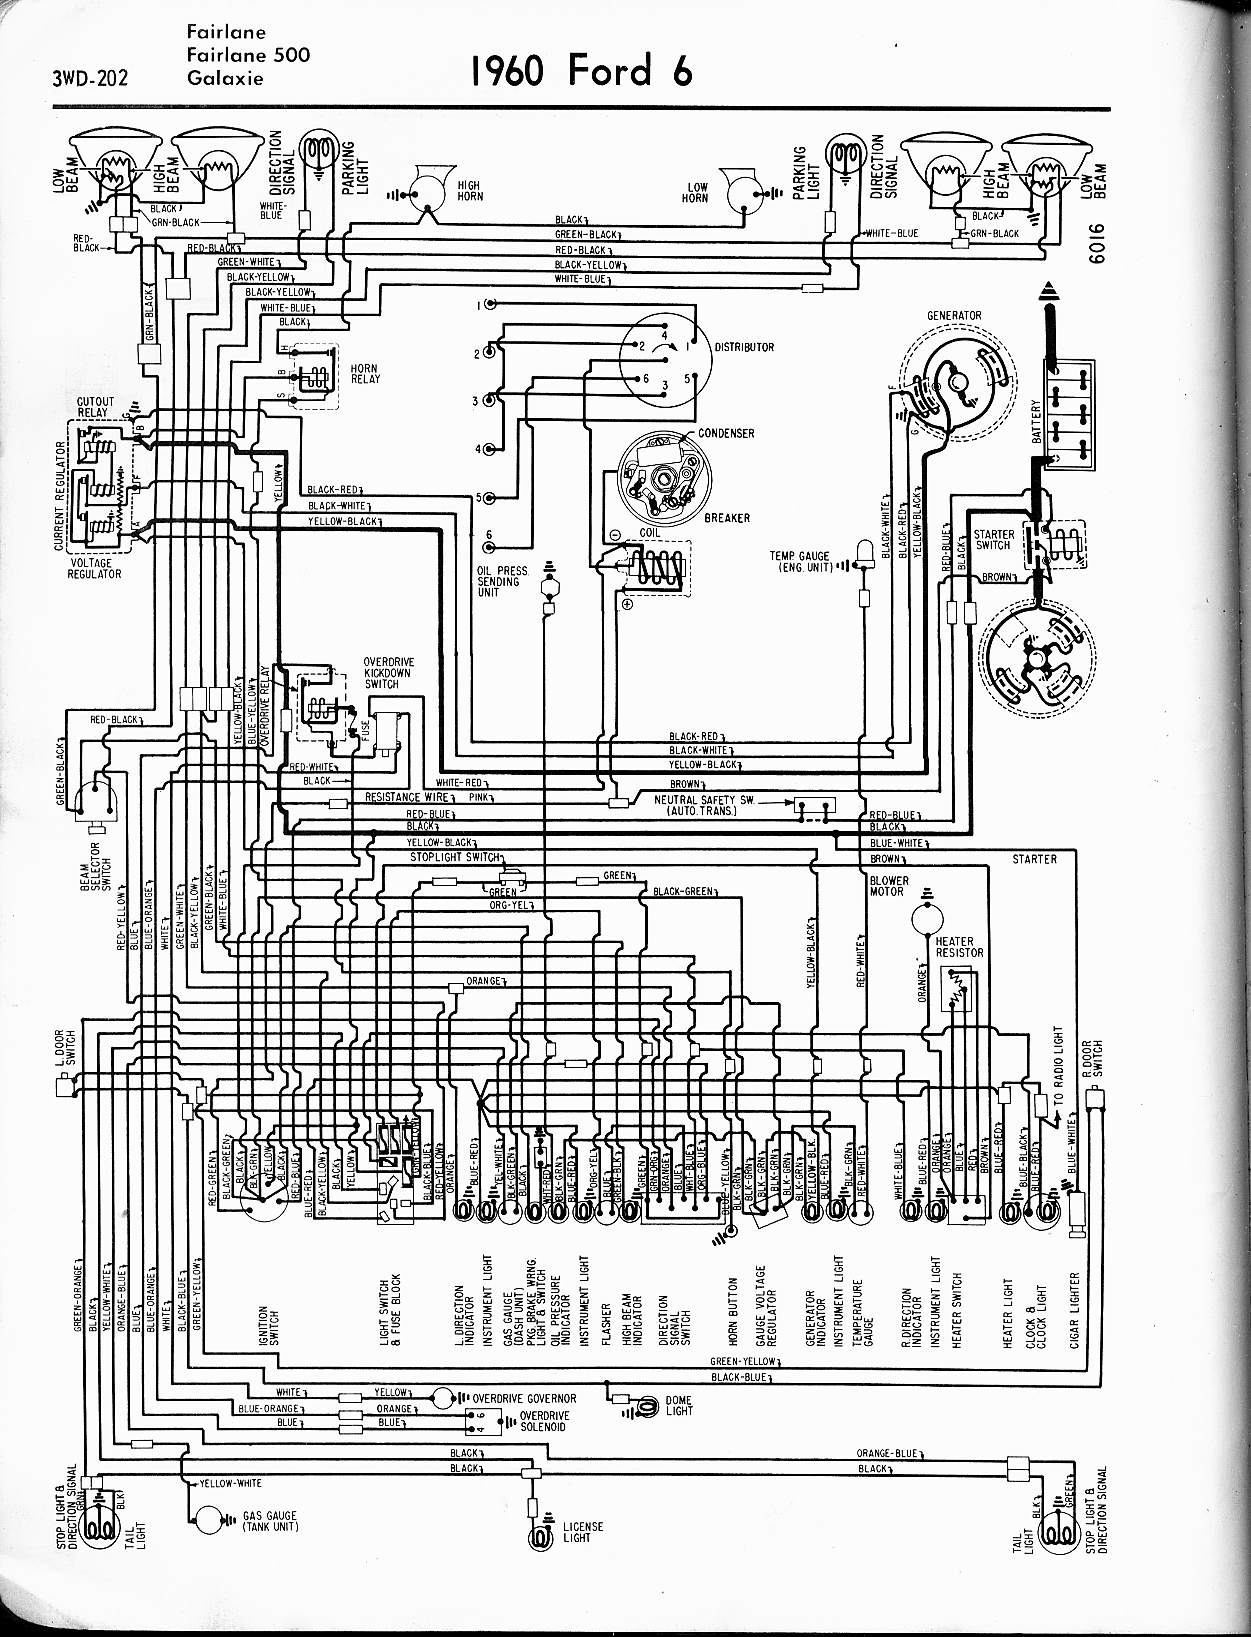 MWire5765 202 57 65 ford wiring diagrams Ford Electronic Ignition Wiring Diagram at edmiracle.co